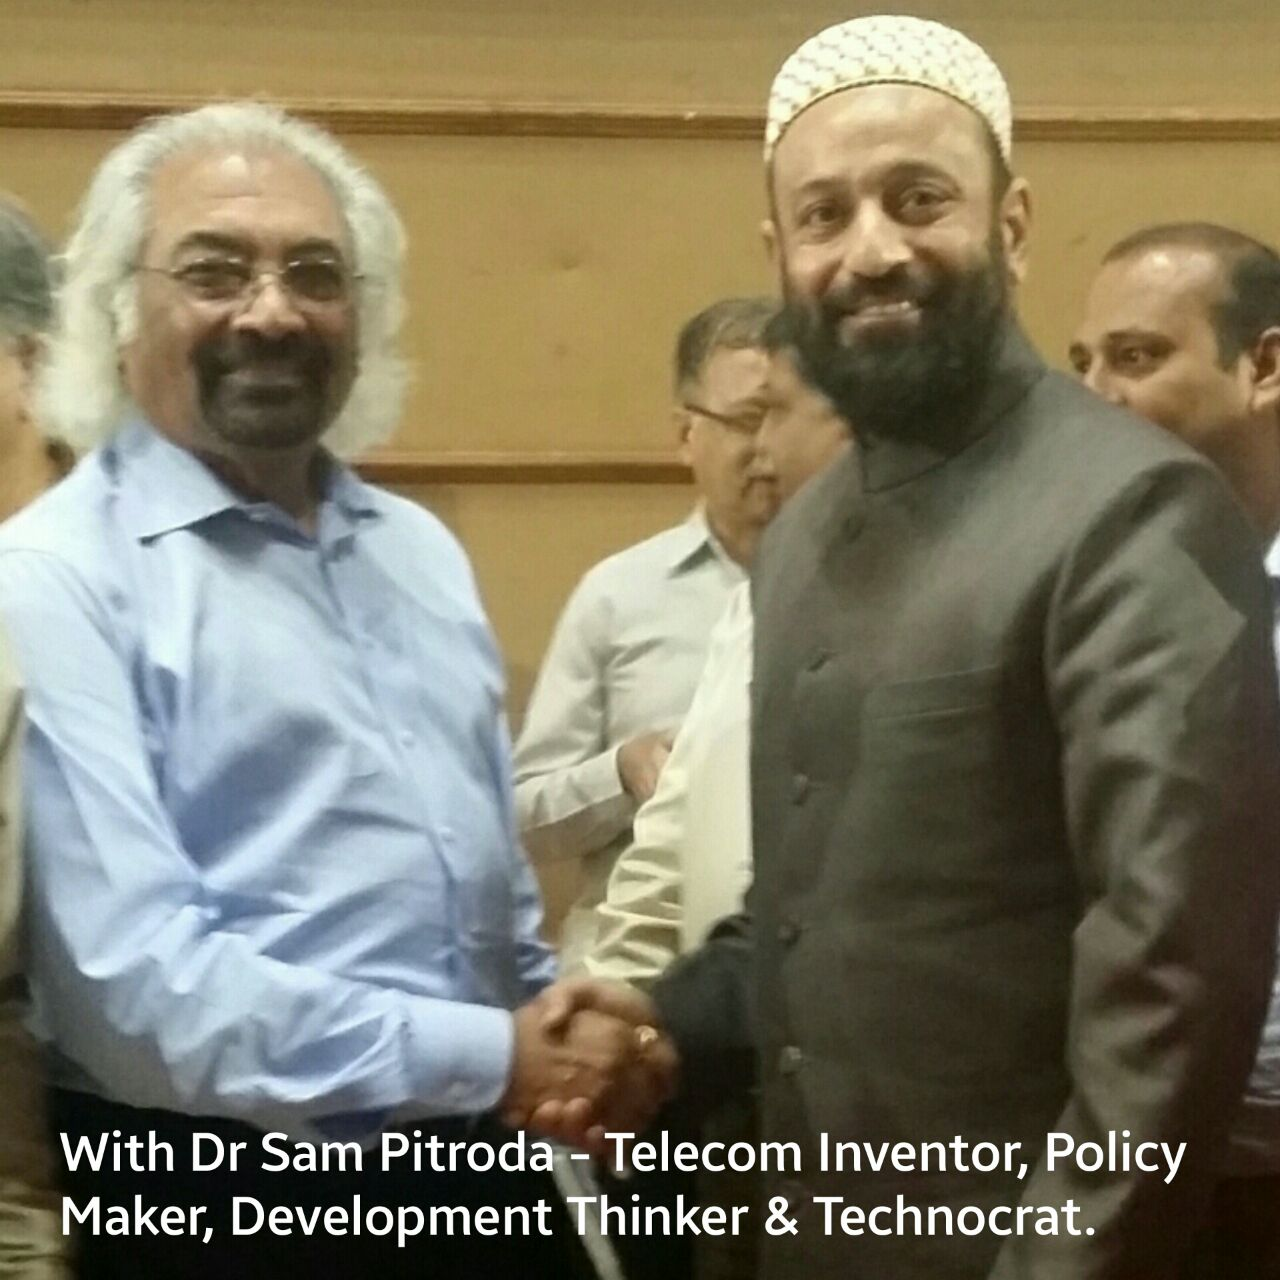 With Sri Sam Pitroda